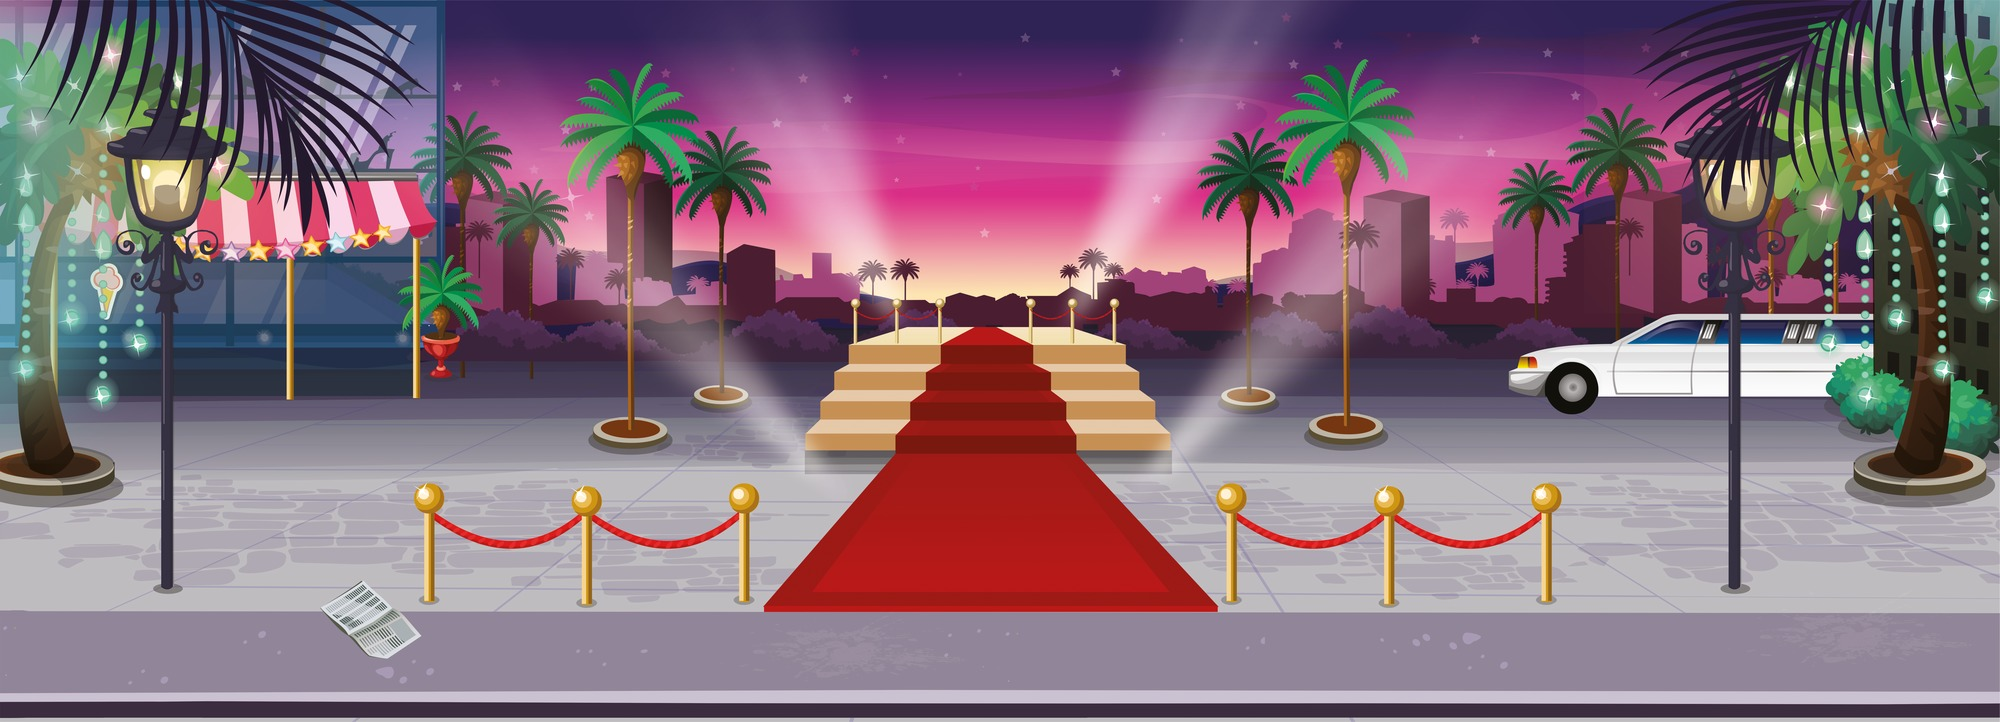 The Red Carpet   Landscape Wall Mural   Wallsaucecom 2000x722